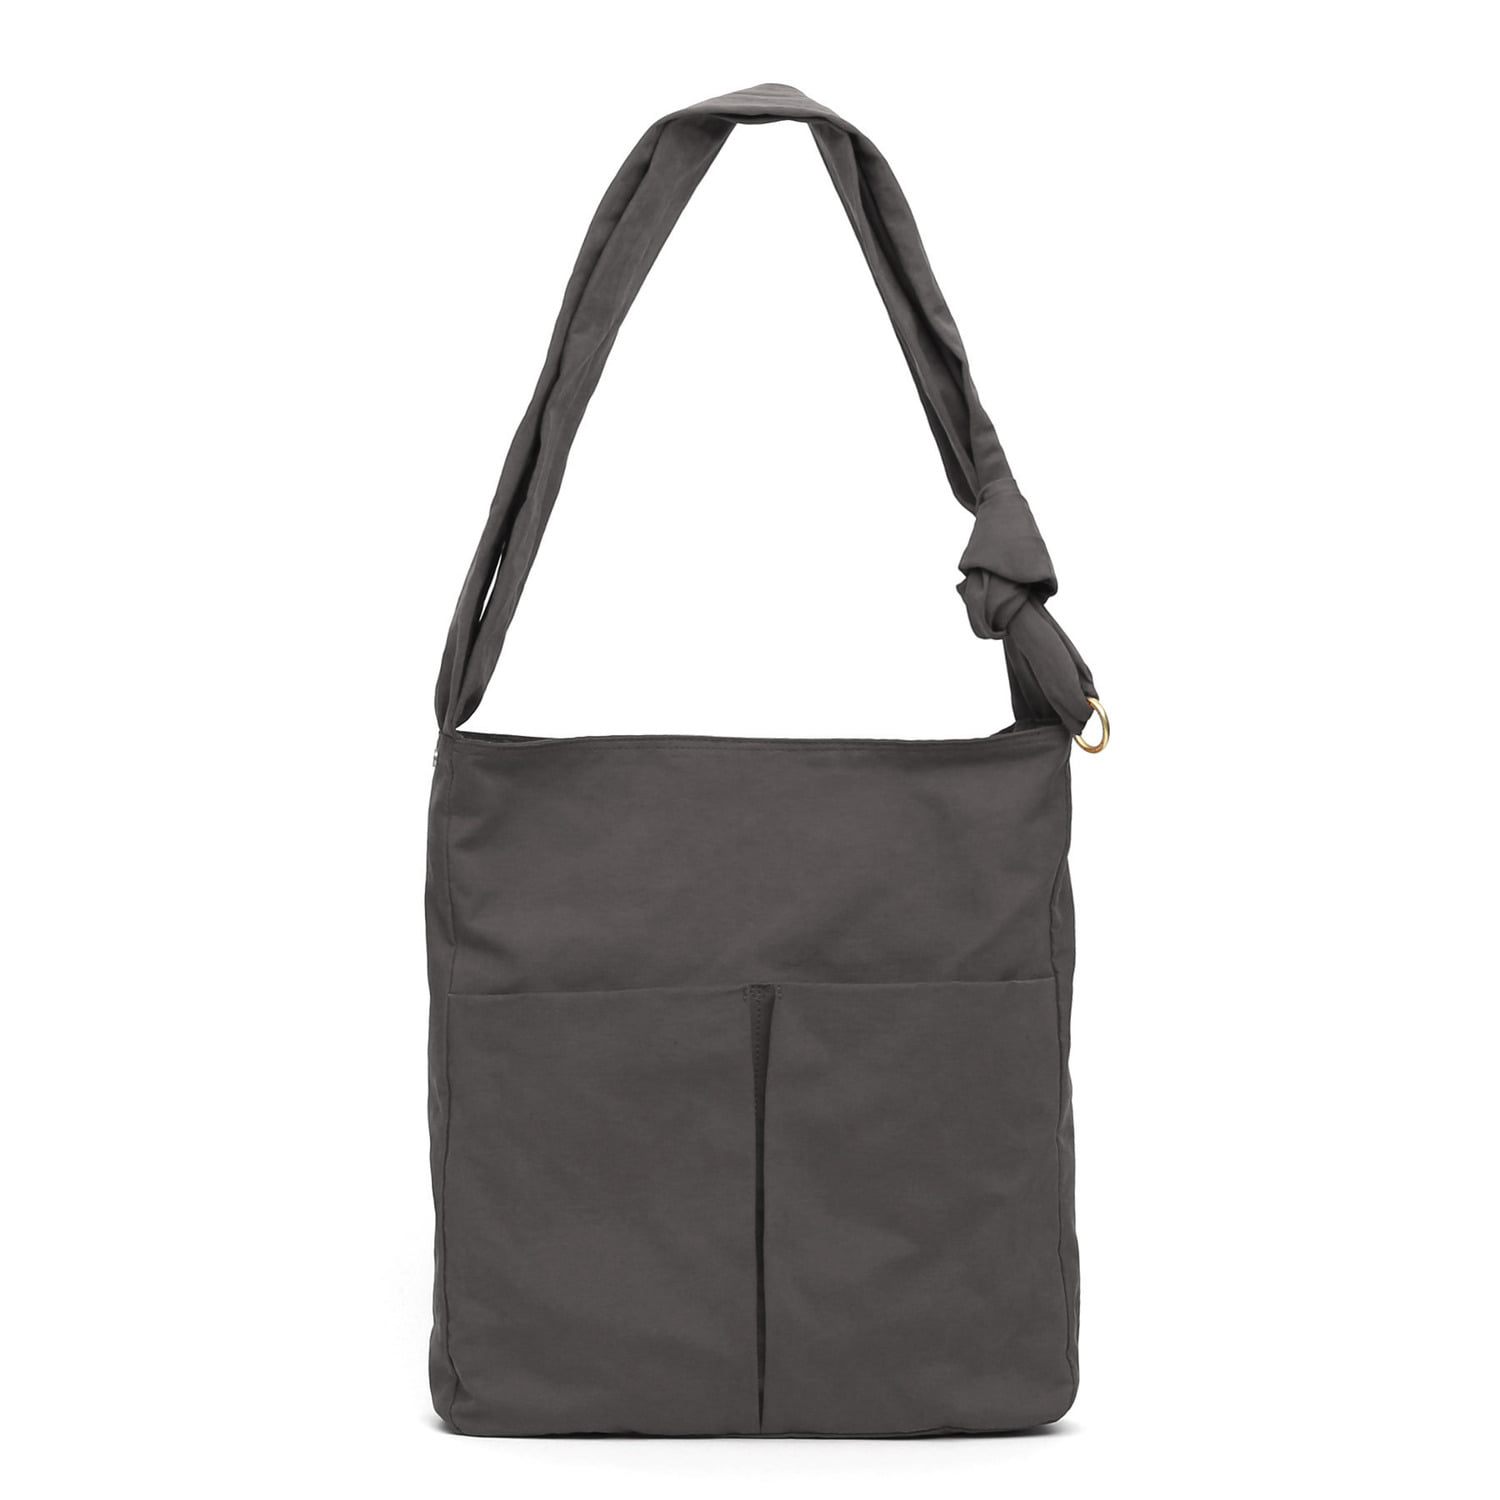 SQUARE BAG / WRINKLE / NPC / DAWN CHARCOAL